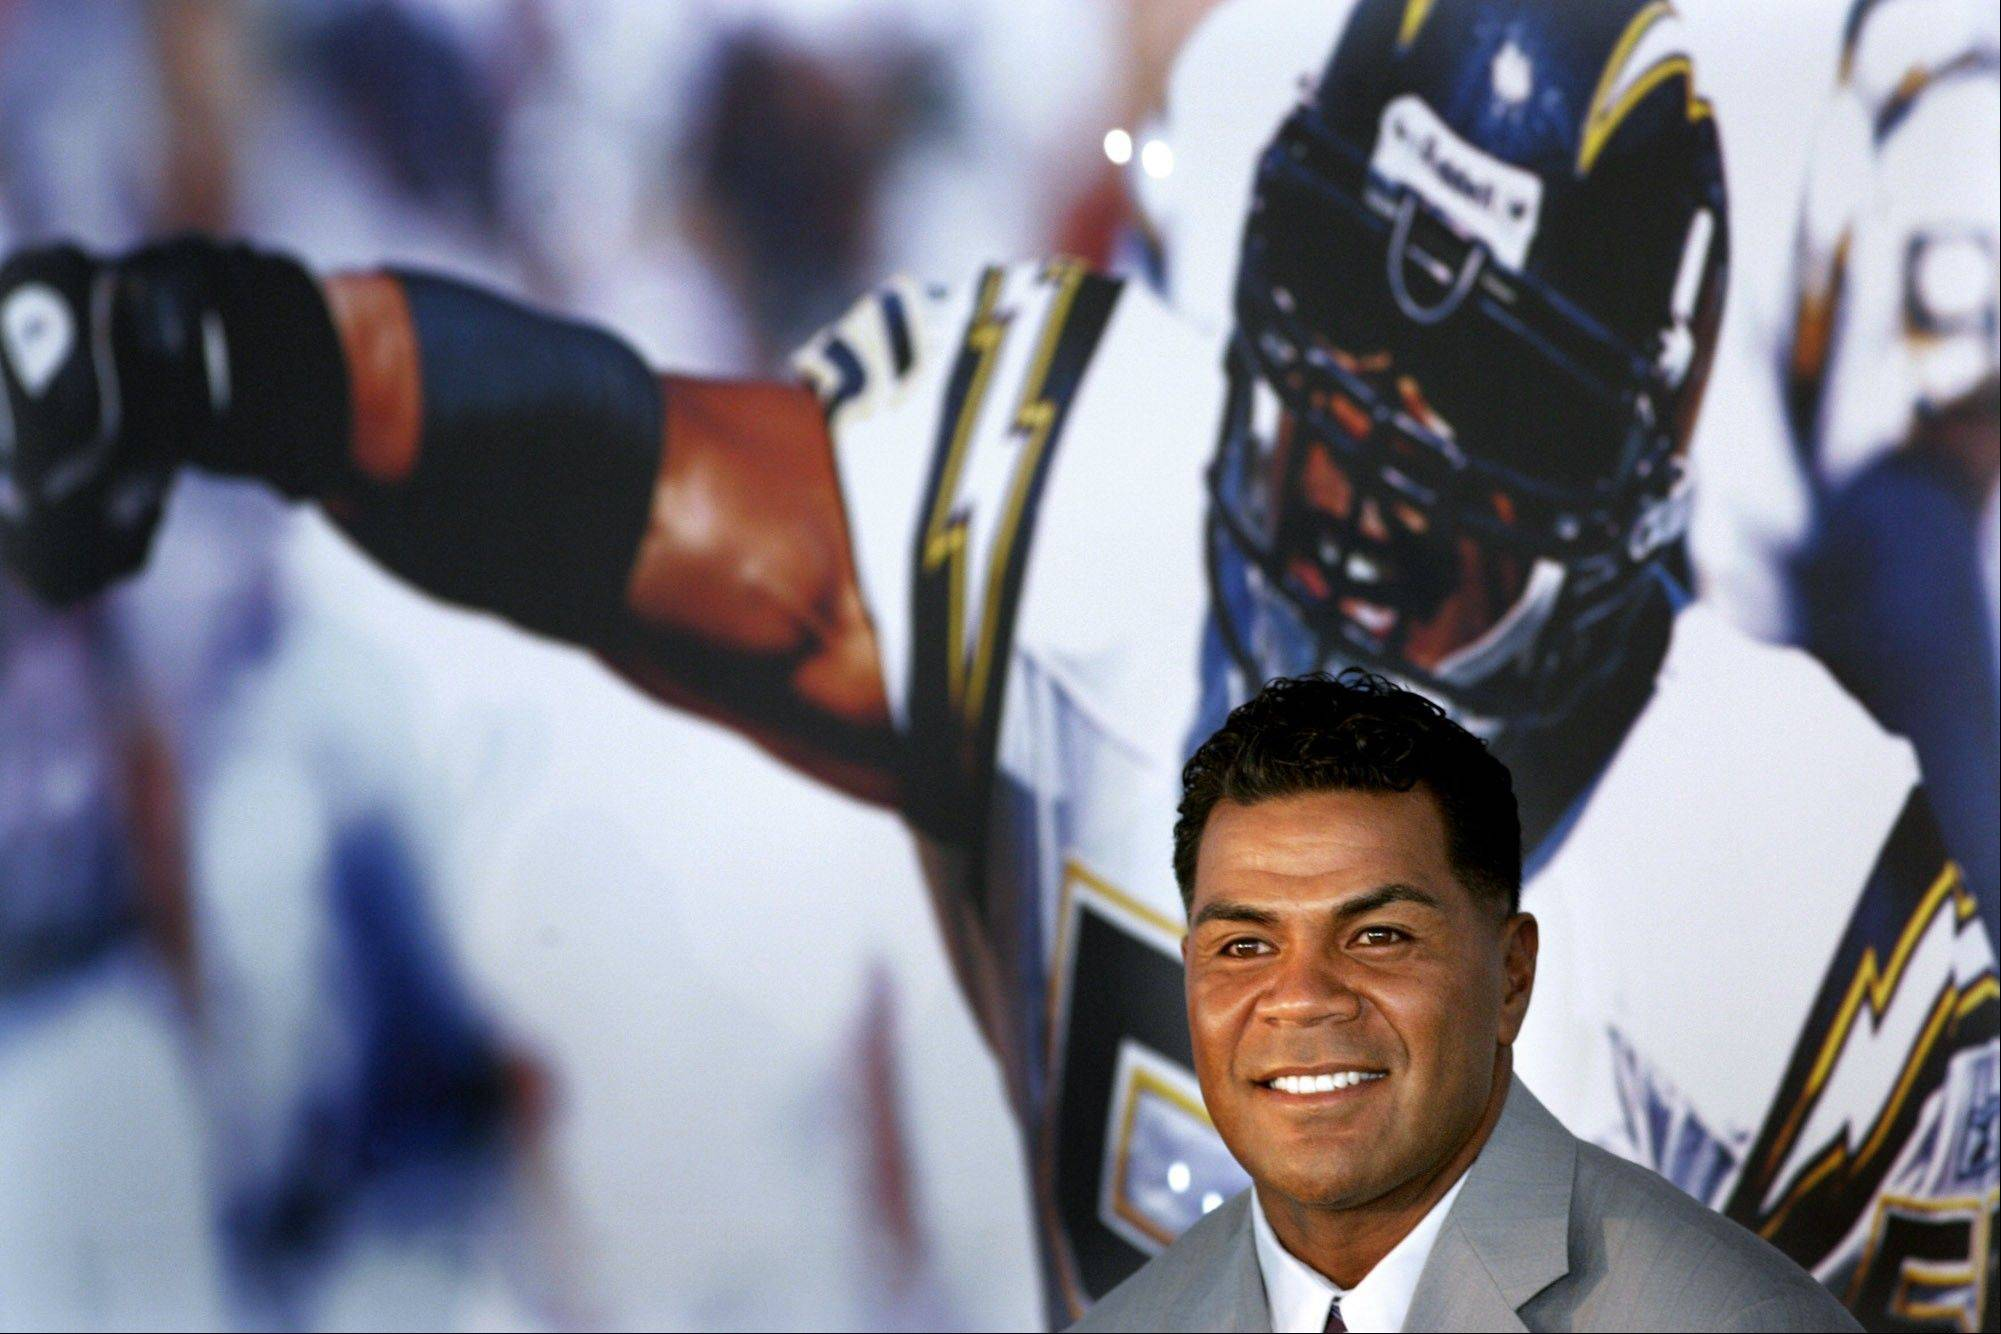 Junior Seau smiles, a former NFL star, was found dead at his home in Oceanside, Calif., on May 2. He was 43.